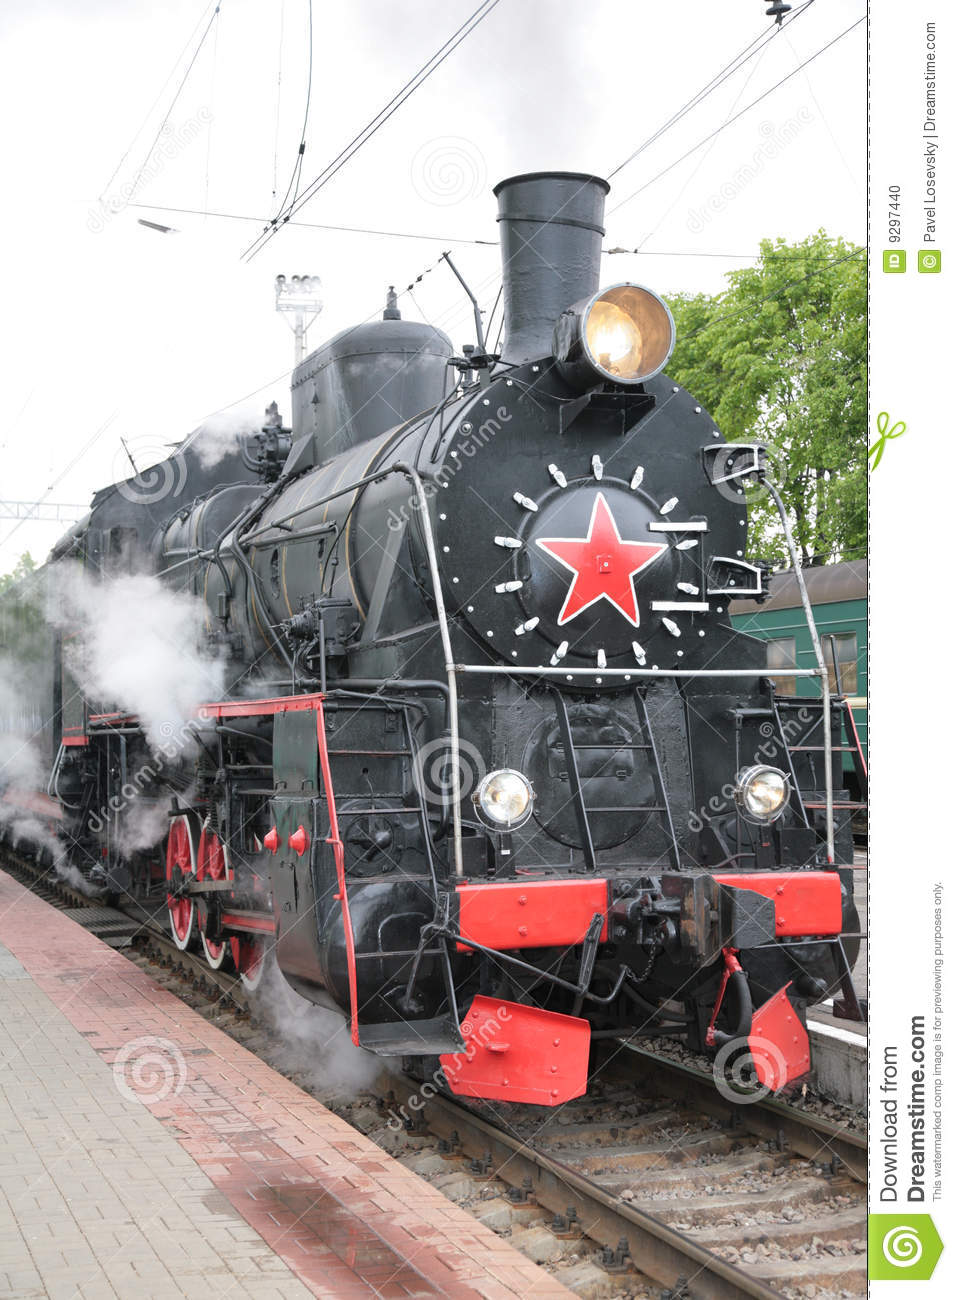 Steam Locomotive, Front View Stock Photo - Image: 9297440